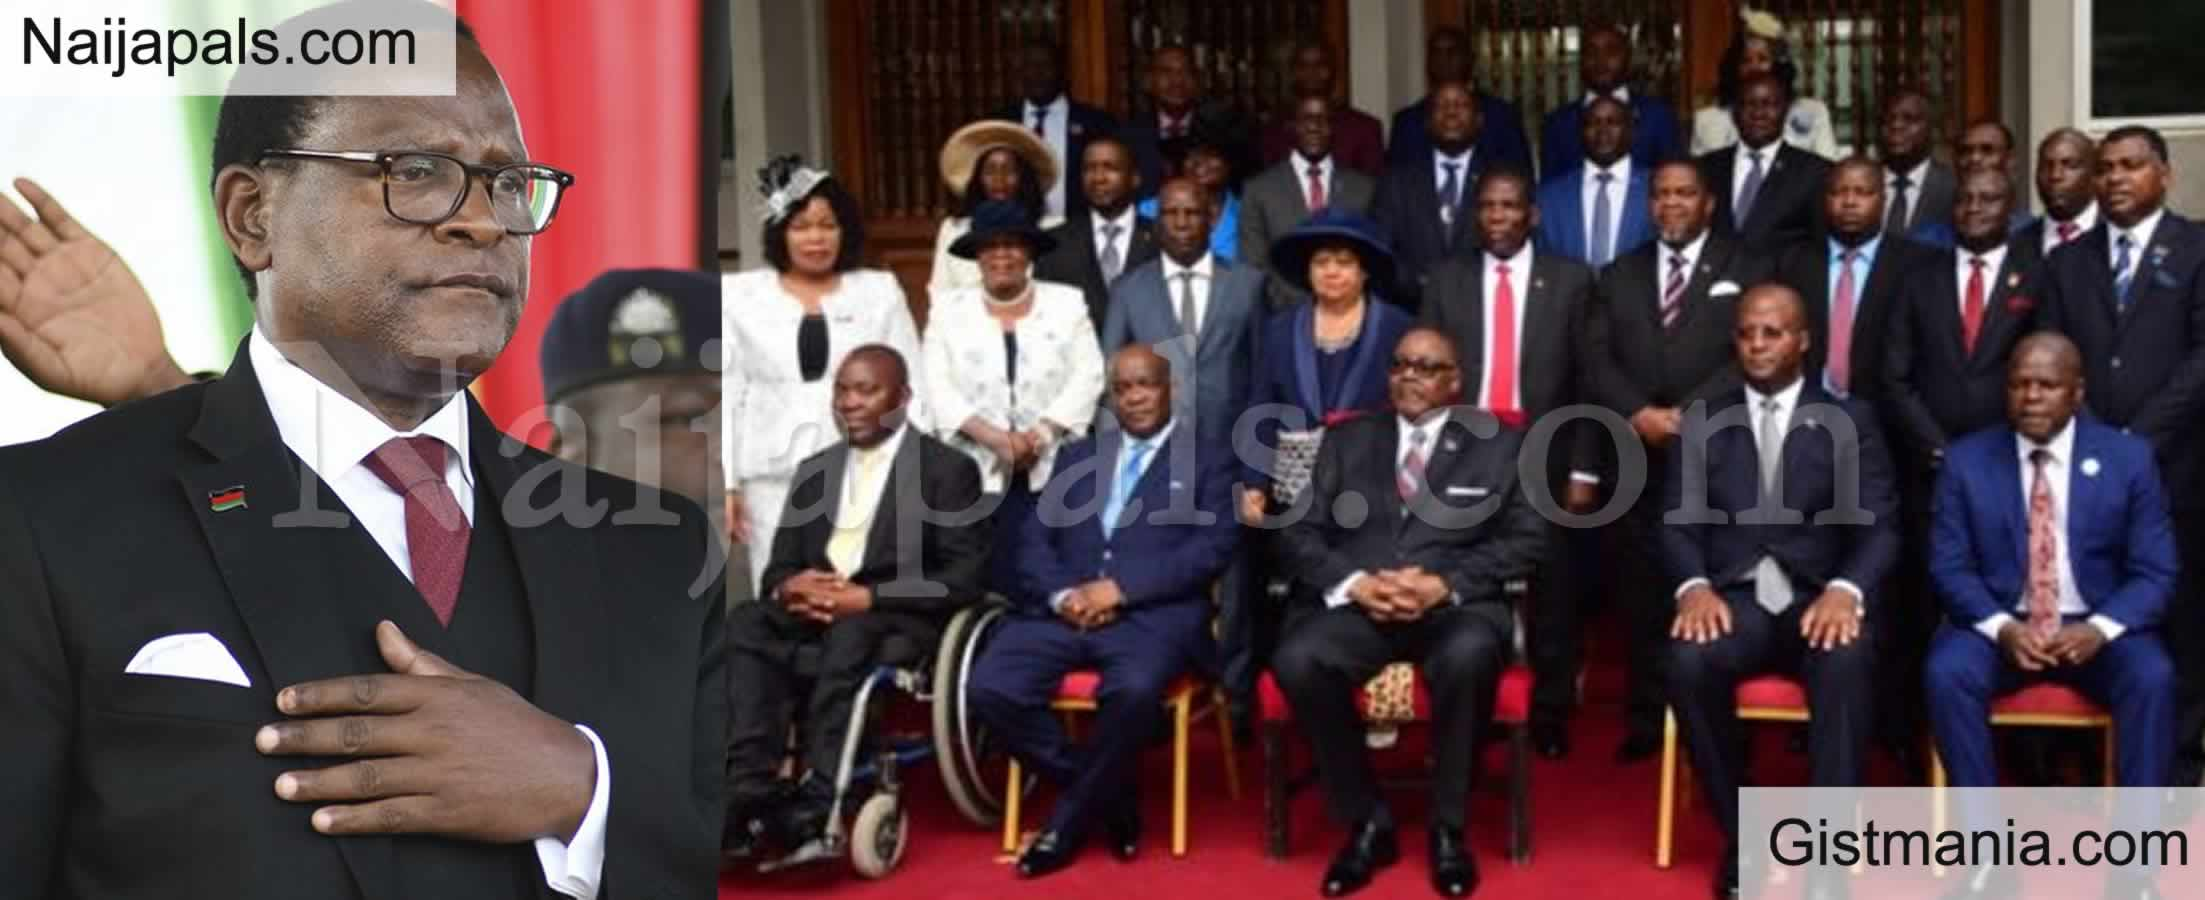 <img alt='.' class='lazyload' data-src='https://img.gistmania.com/emot/comment.gif' /> <b>Malawi President, Lazarus Chakwera Accused of Filling His Cabinet With His Family & Relatives</b>